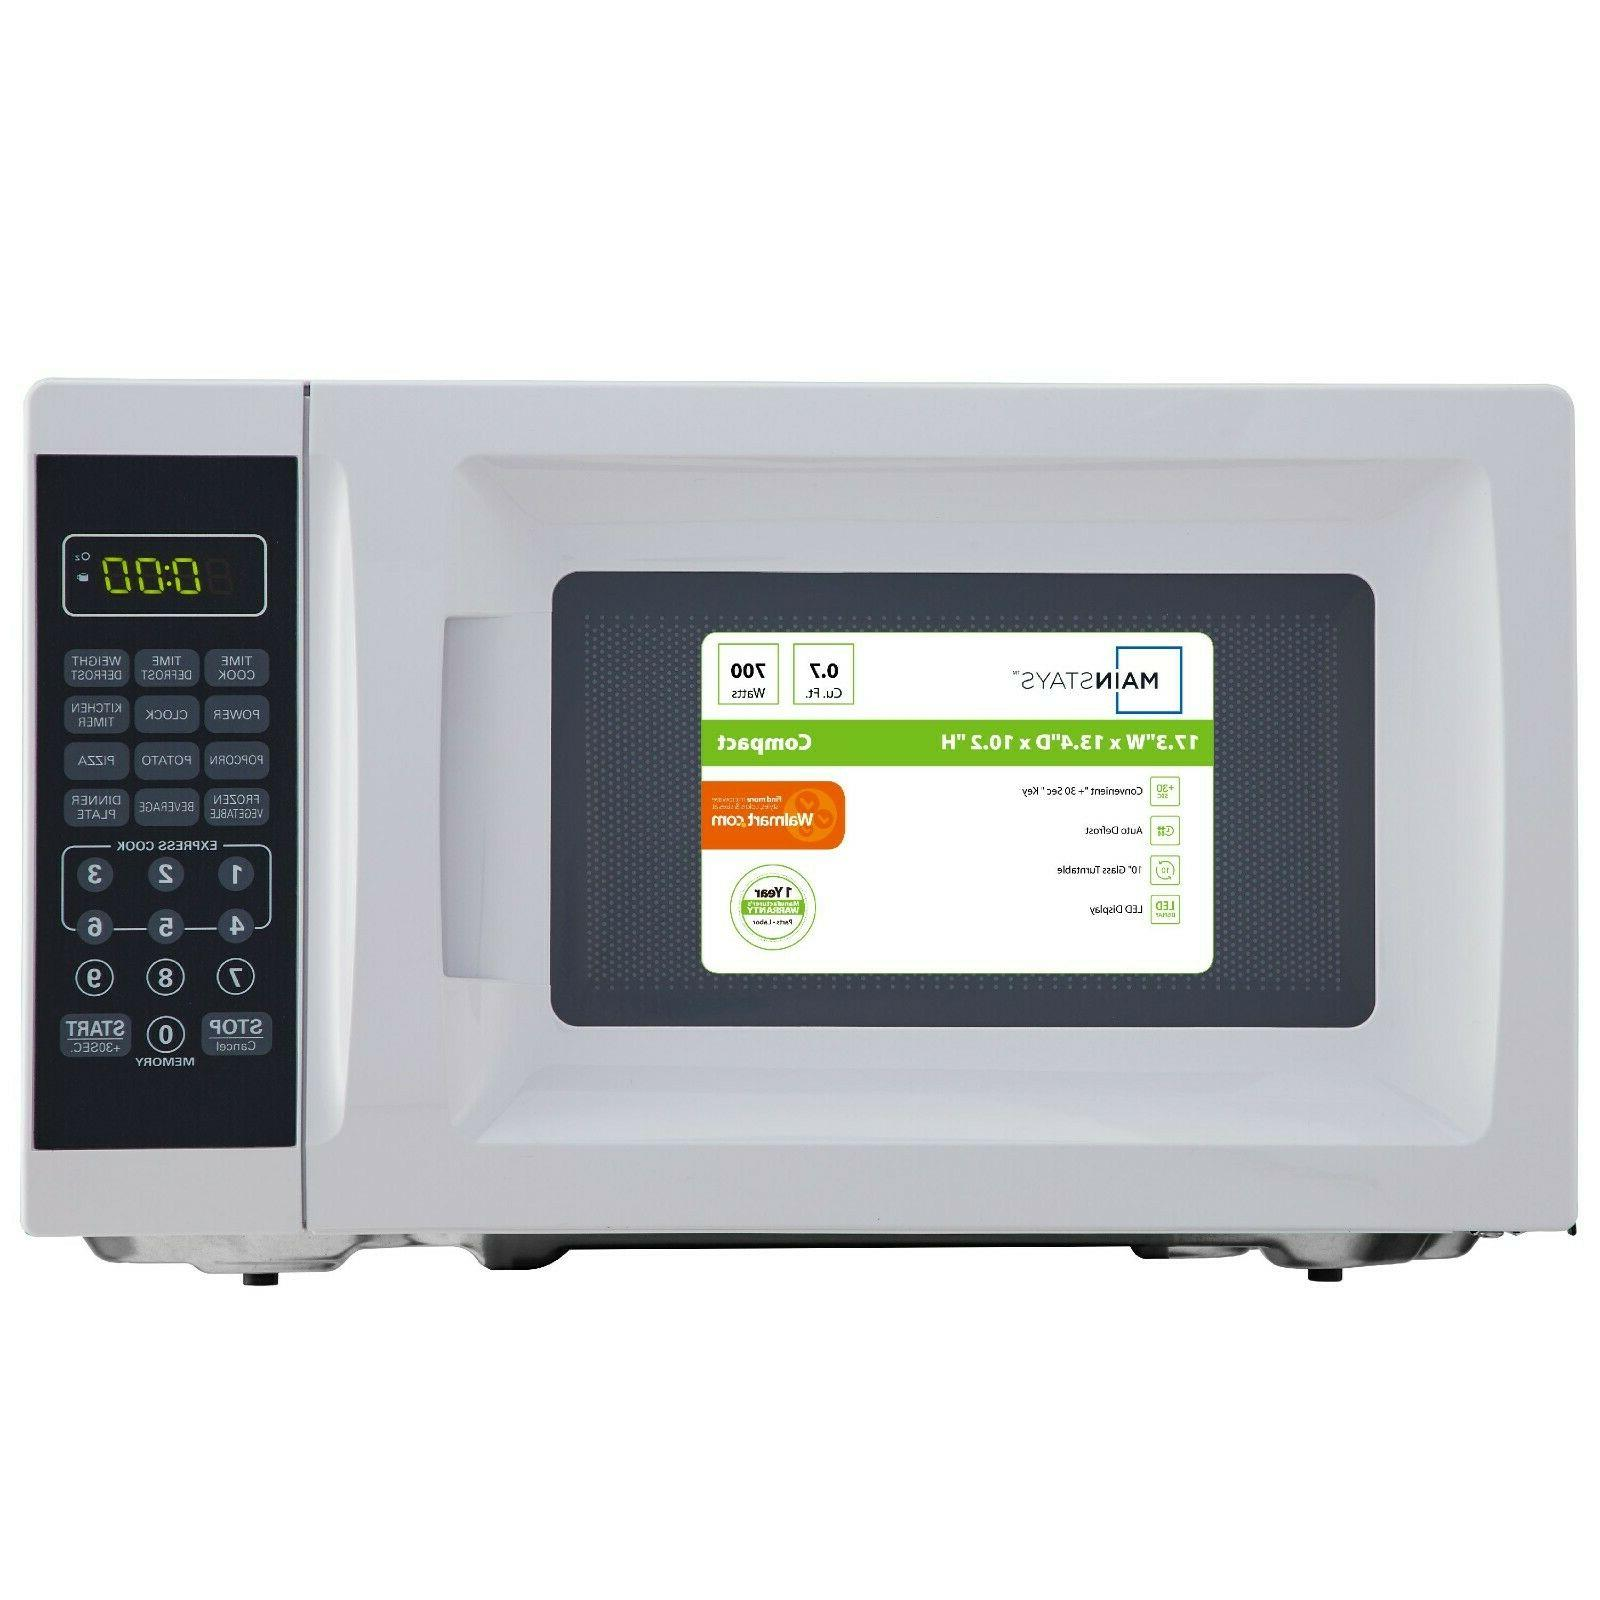 Mainstays 700W Microwave with 10 Power Levels Brand New 2020